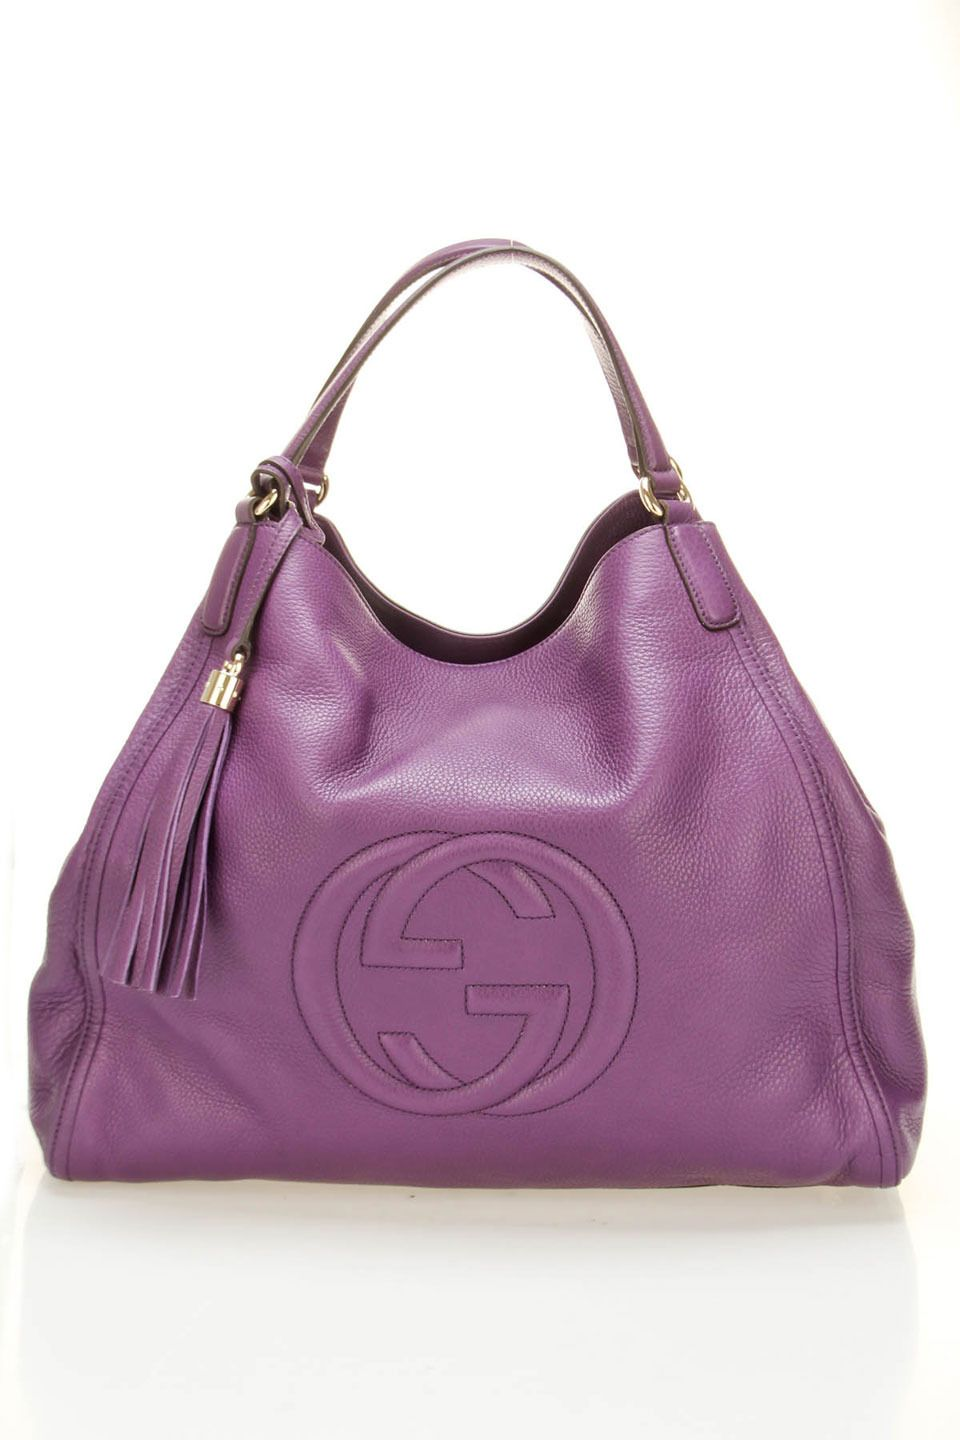 c7c2b97e7 Gucci Large Soho Cellarius Tote In Purple - Beyond the Rack | Color ...